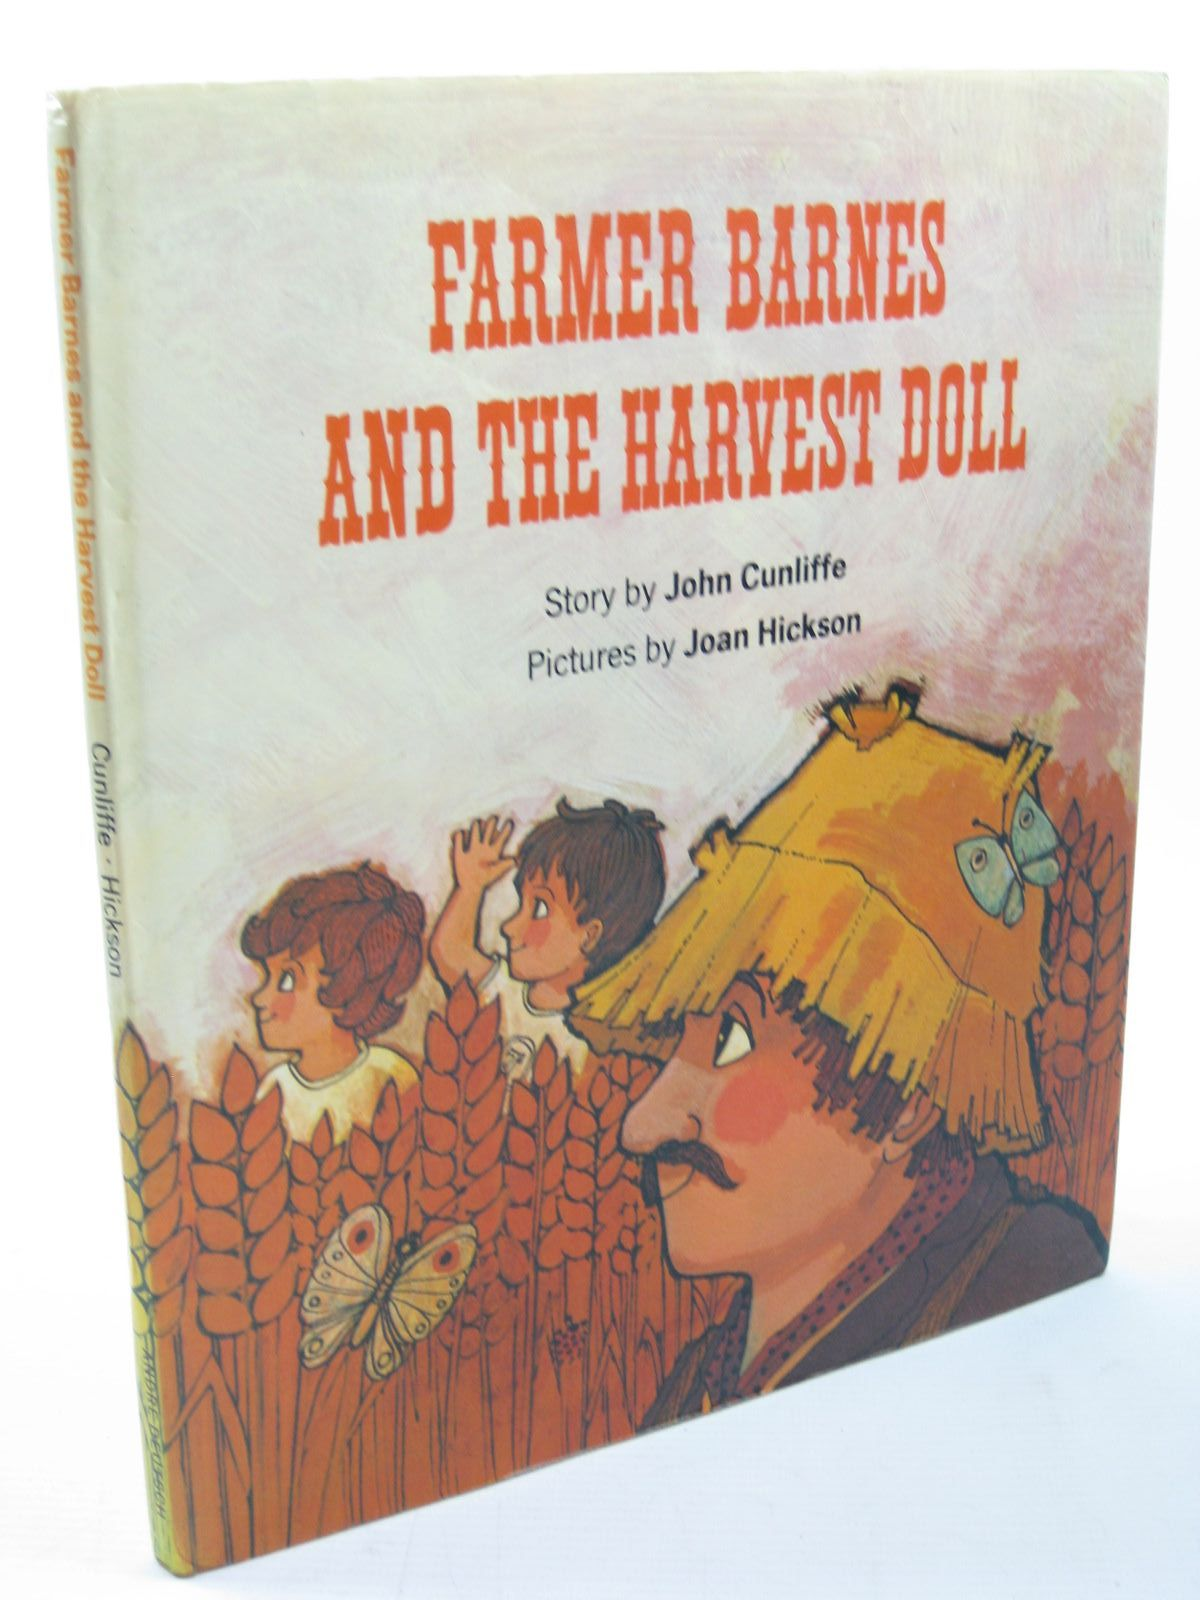 Photo of FARMER BARNES AND THE HARVEST DOLL written by Cunliffe, John illustrated by Hickson, Joan published by Andre Deutsch (STOCK CODE: 1312795)  for sale by Stella & Rose's Books